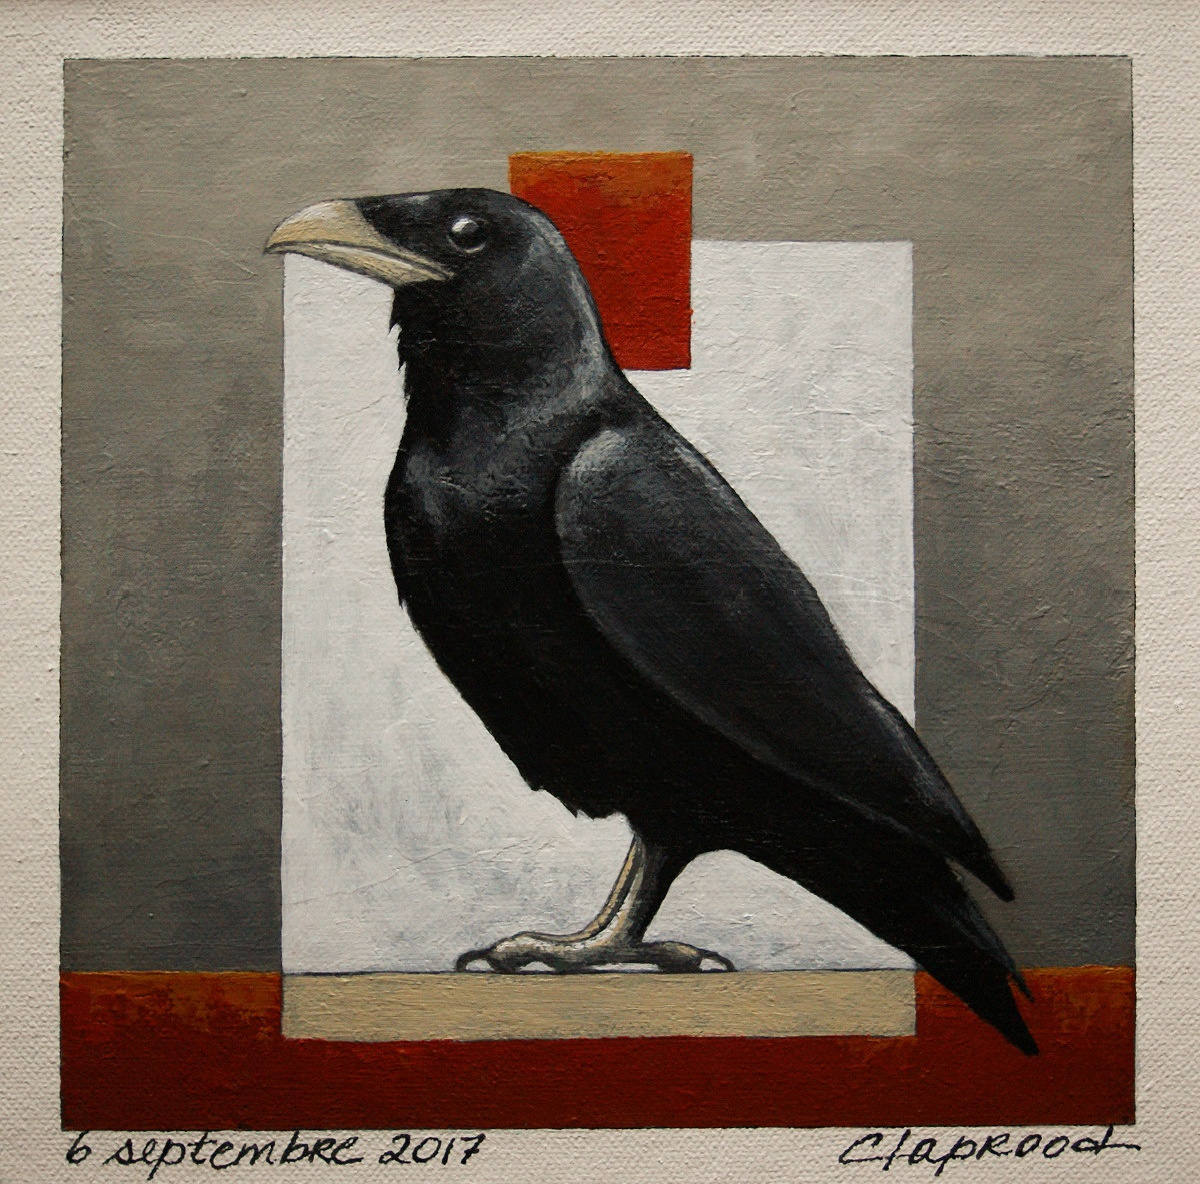 6x6 inches painting within an 11x14&quot; mount DETAILS HERE:  https:// seethis.co/bQQ0nl/  &nbsp;   #painting #Bird #red #Black #Raven #Etsy #Art #HomeDecor<br>http://pic.twitter.com/IPtw9dnrNX